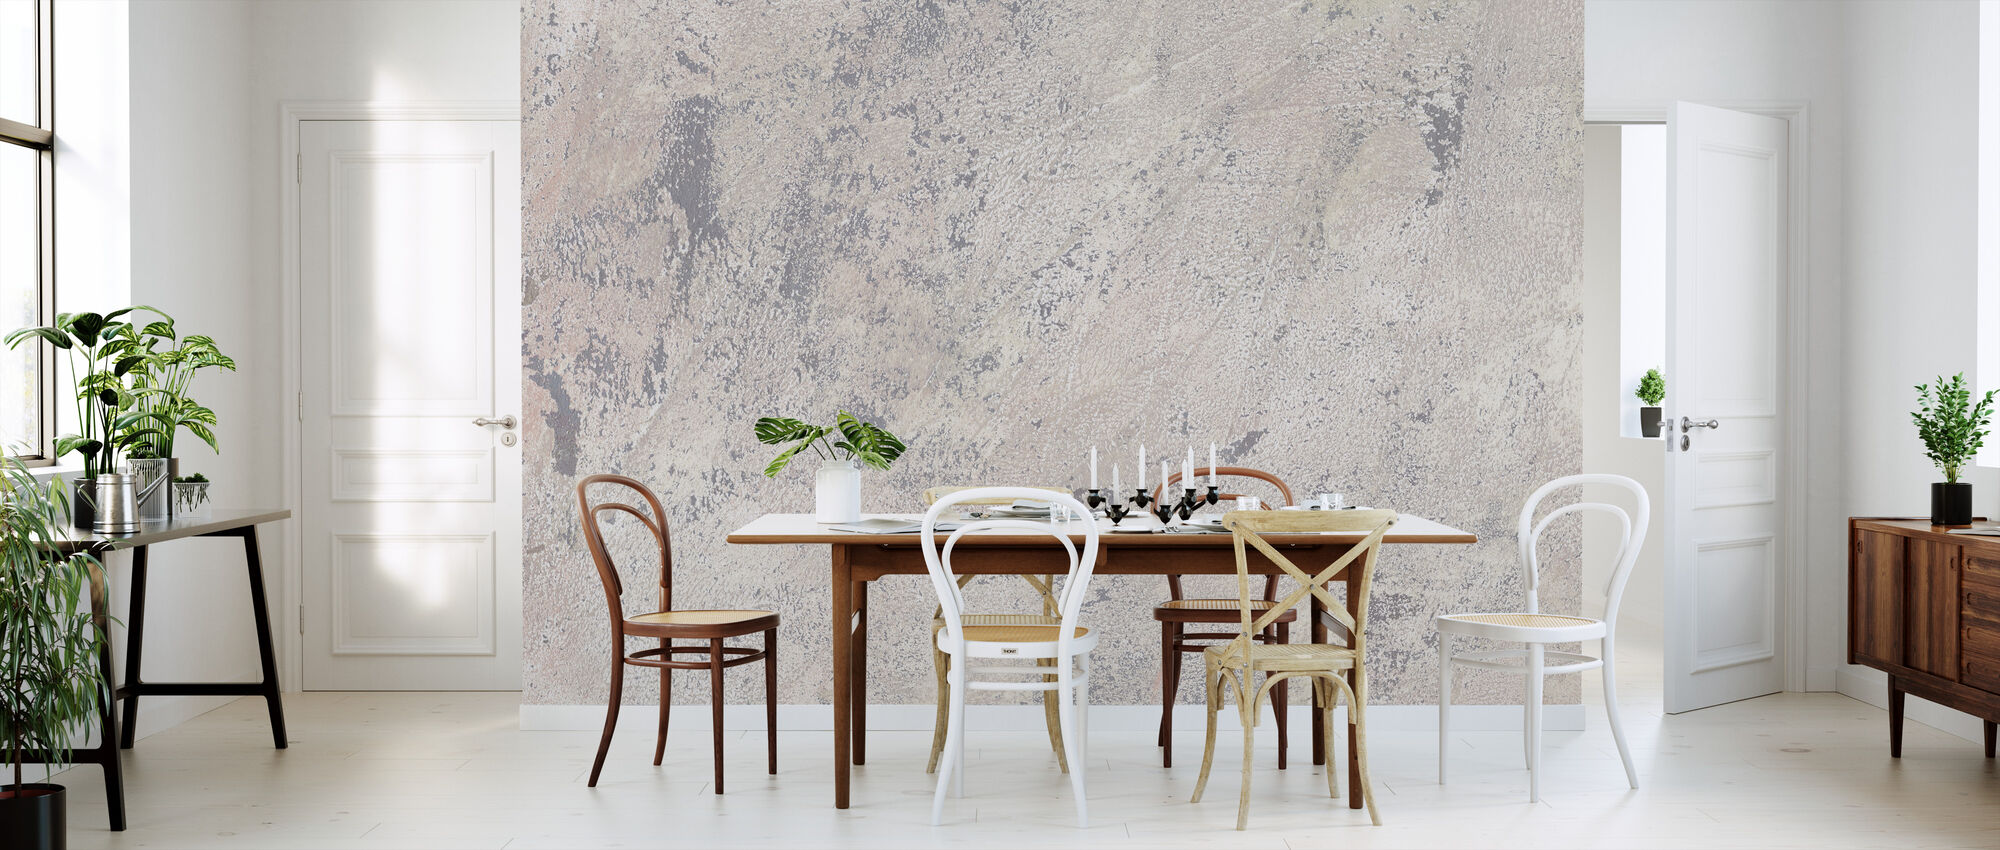 Weathered Toned Wall - Wallpaper - Kitchen